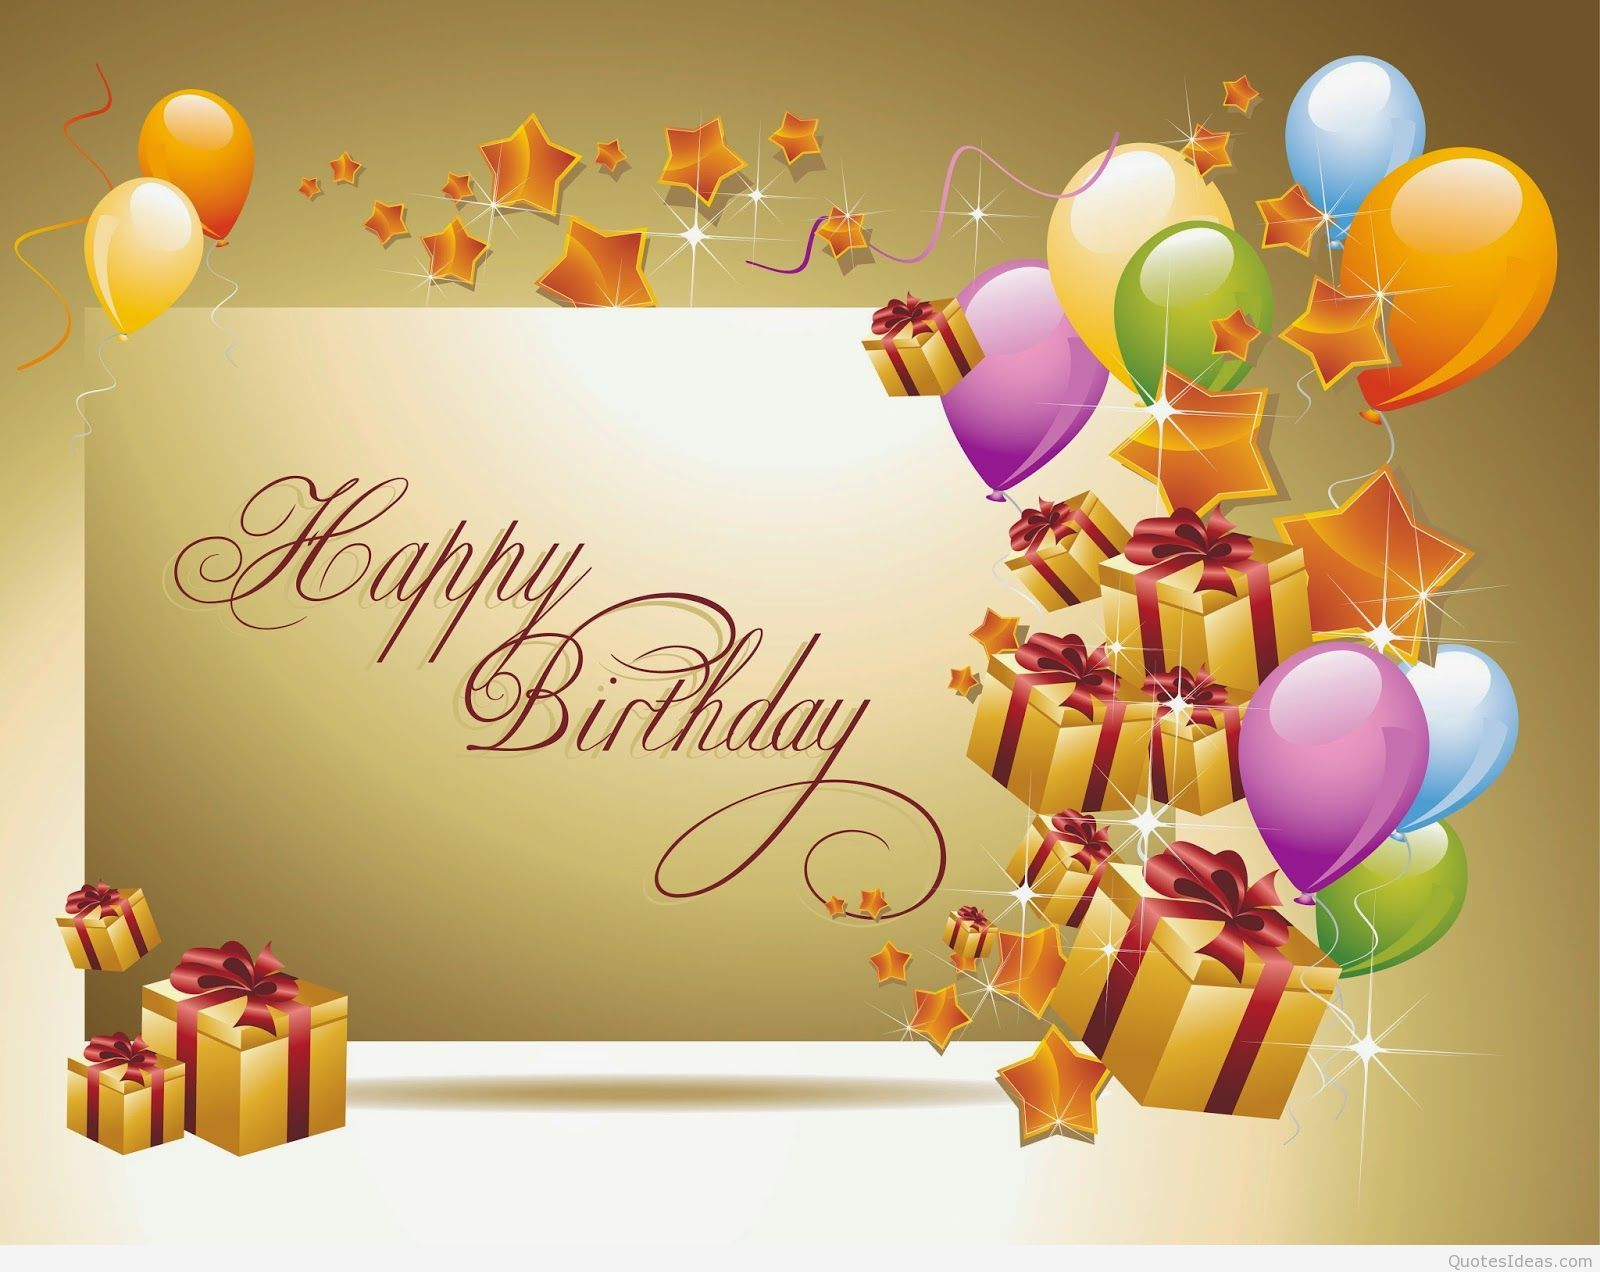 happy birthday wallpaper images ; ea0de81f5eac27cc8ae58492243438b3